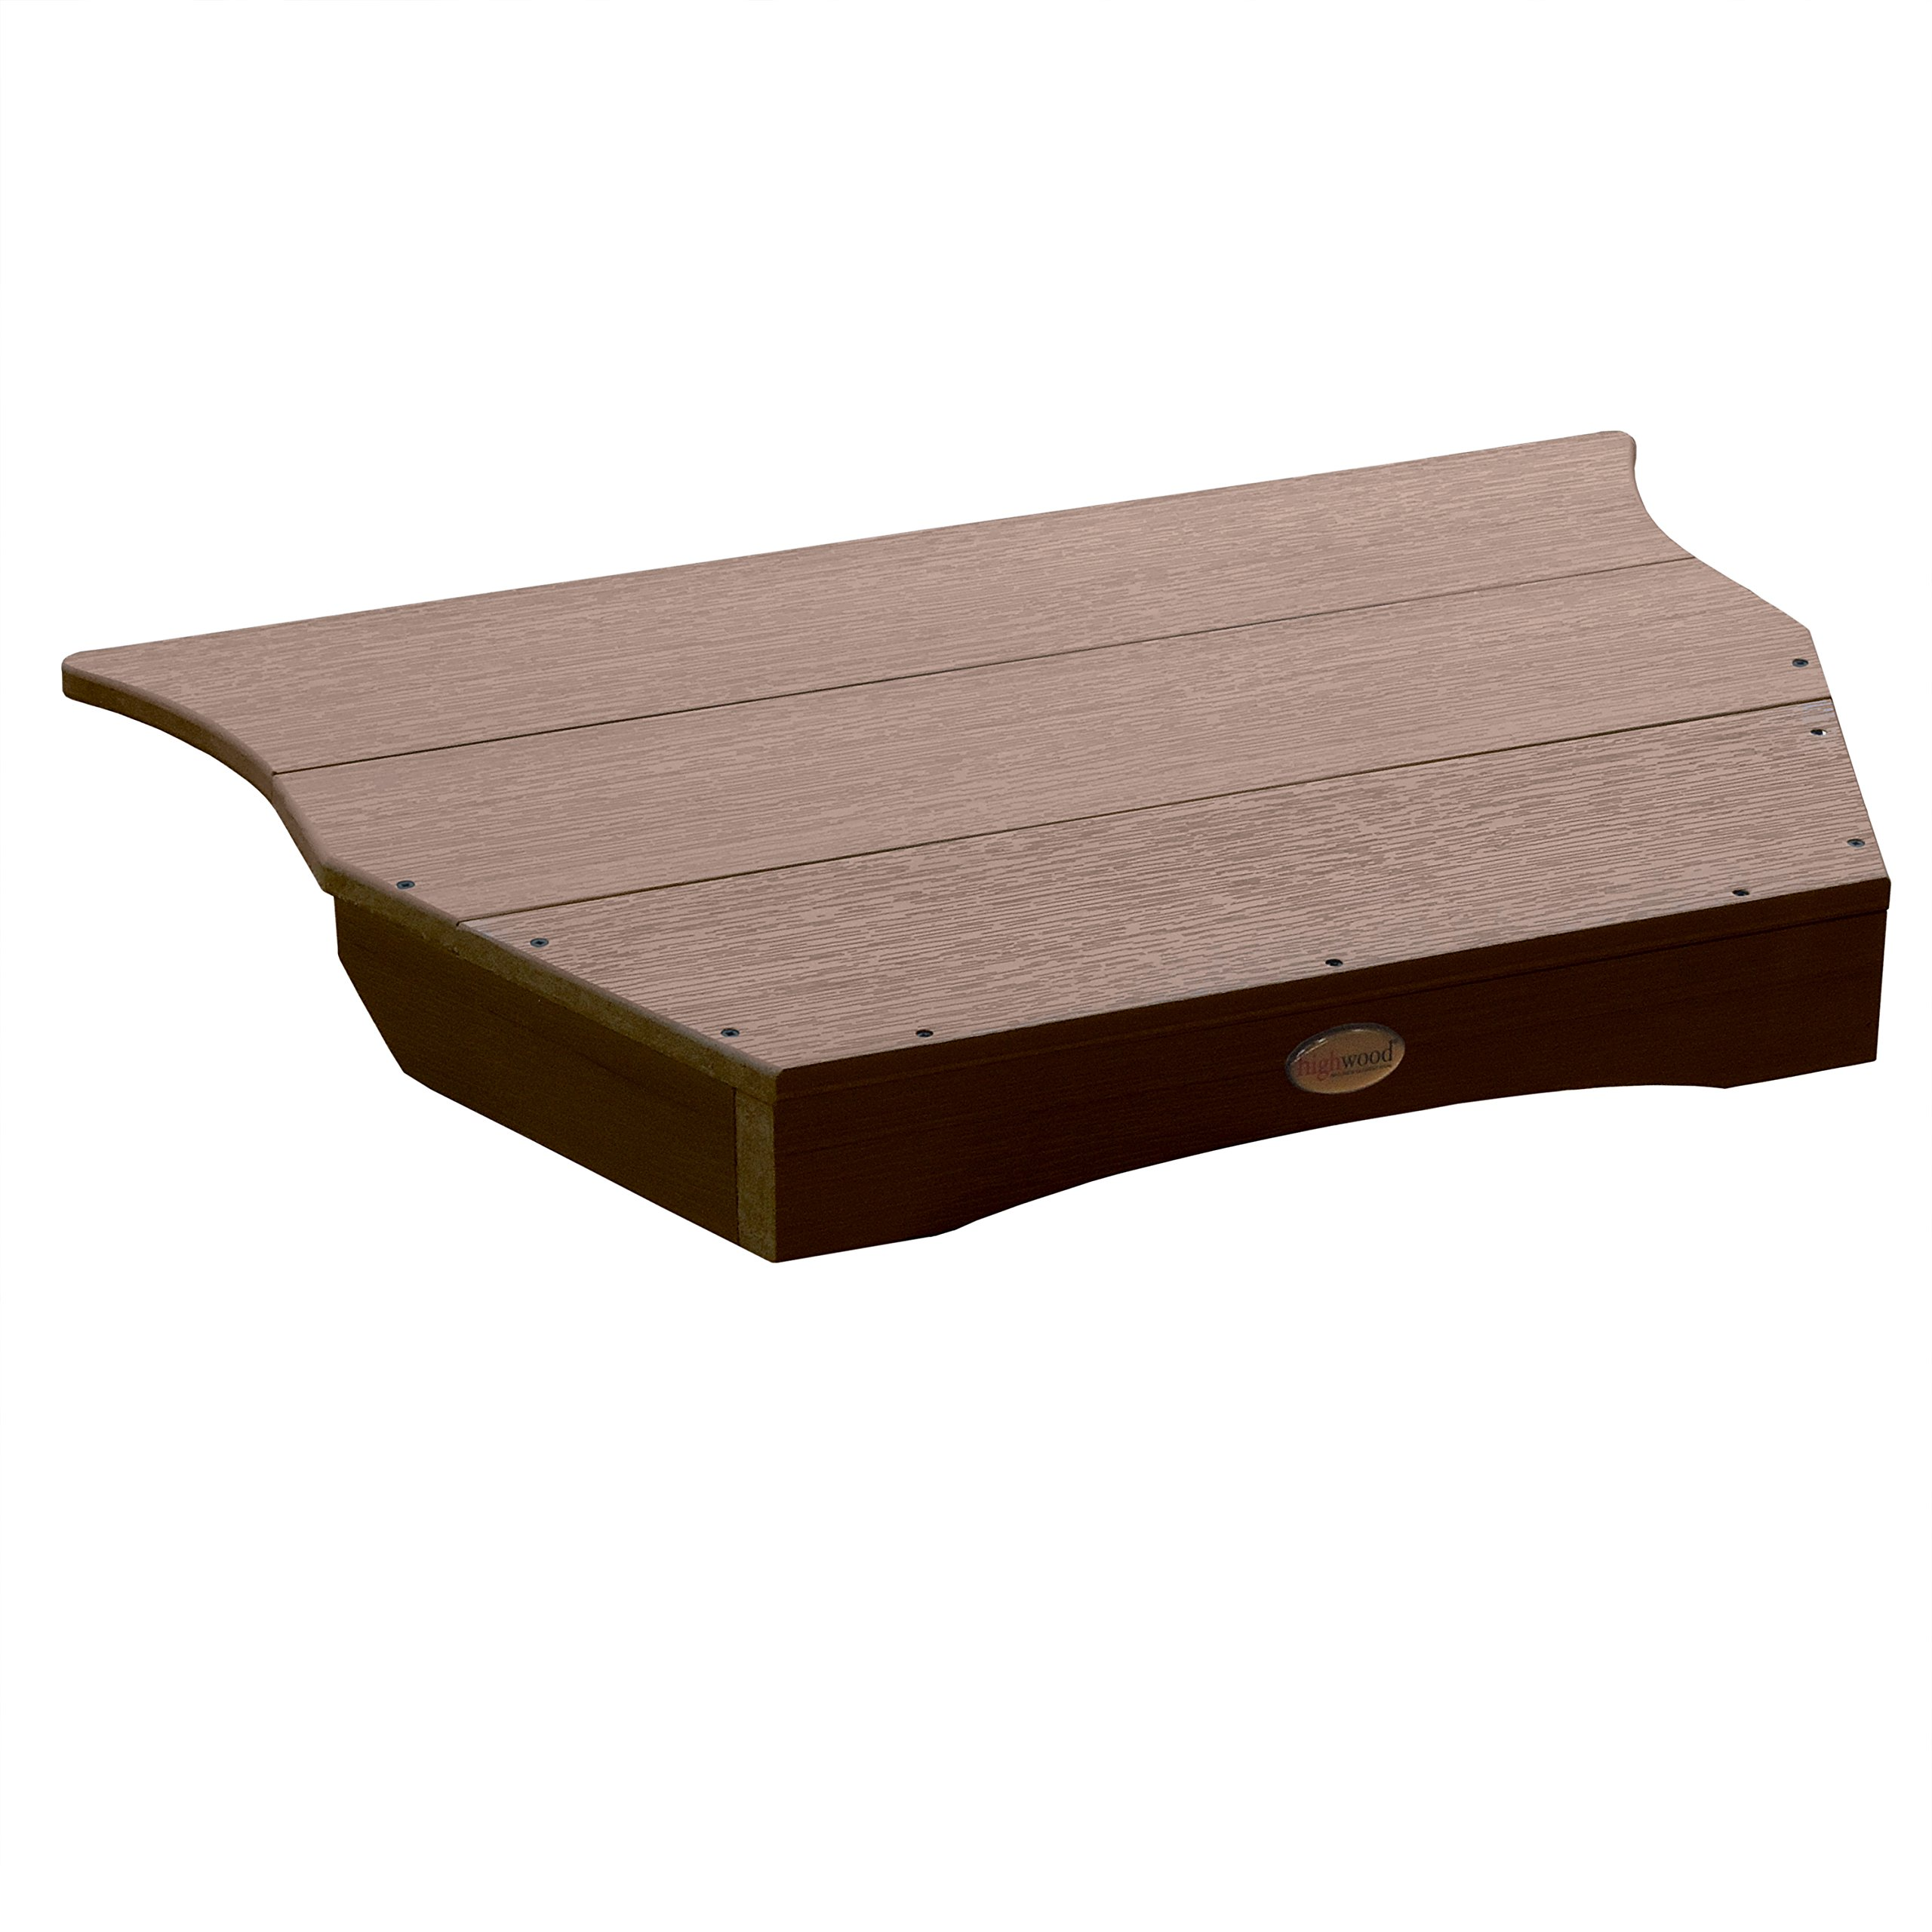 Highwood Adirondack Tete-a-Tete Connecting Table, Weathered Acorn